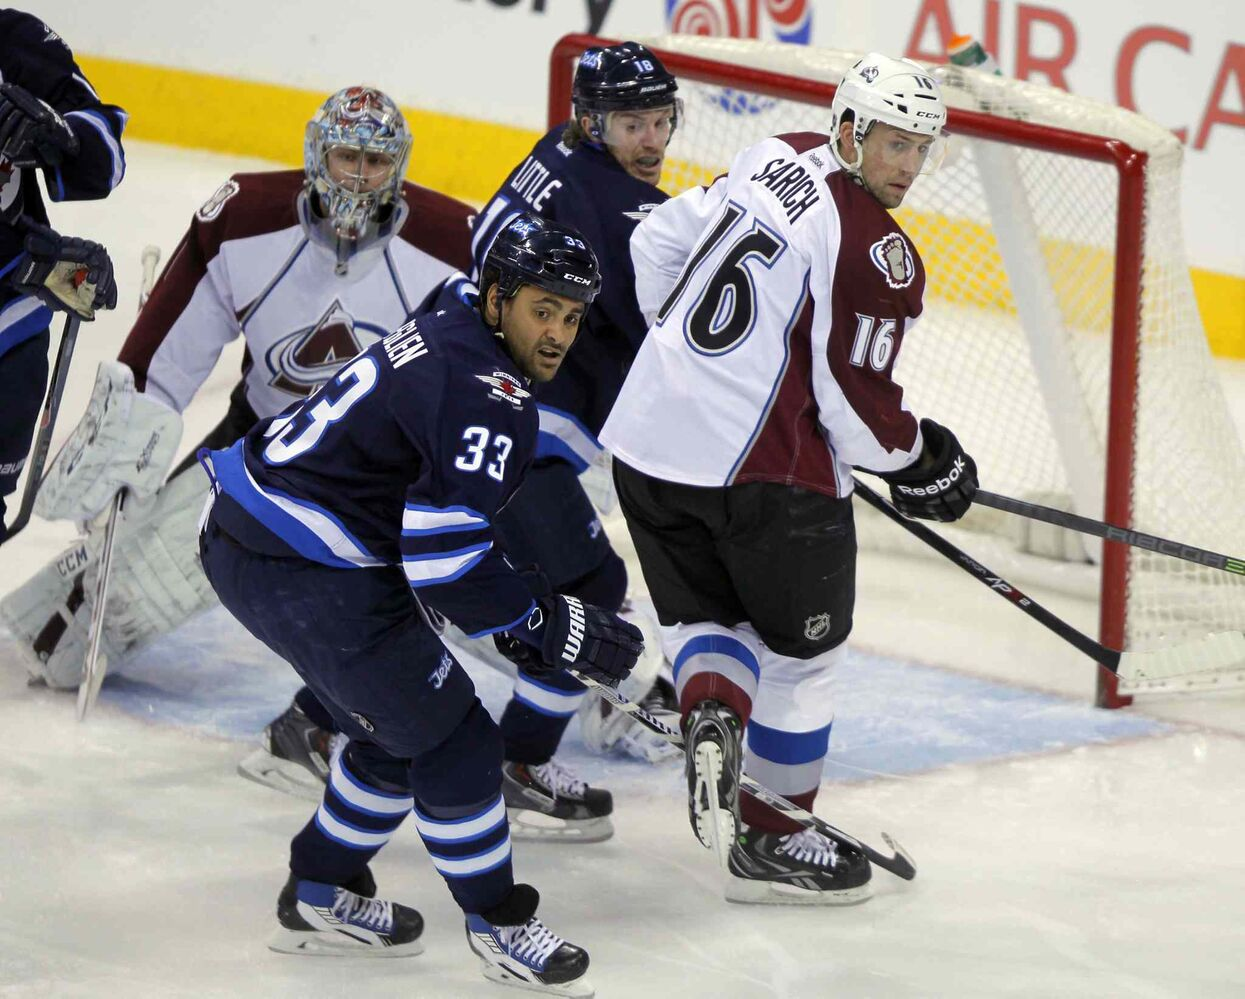 From left: Semyon Varlamov, Dustin Byfuglien, Bryan Little and Cory Sarich track the puck in the first period. (BORIS MINKEVICH / WINNIPEG FREE PRESS)